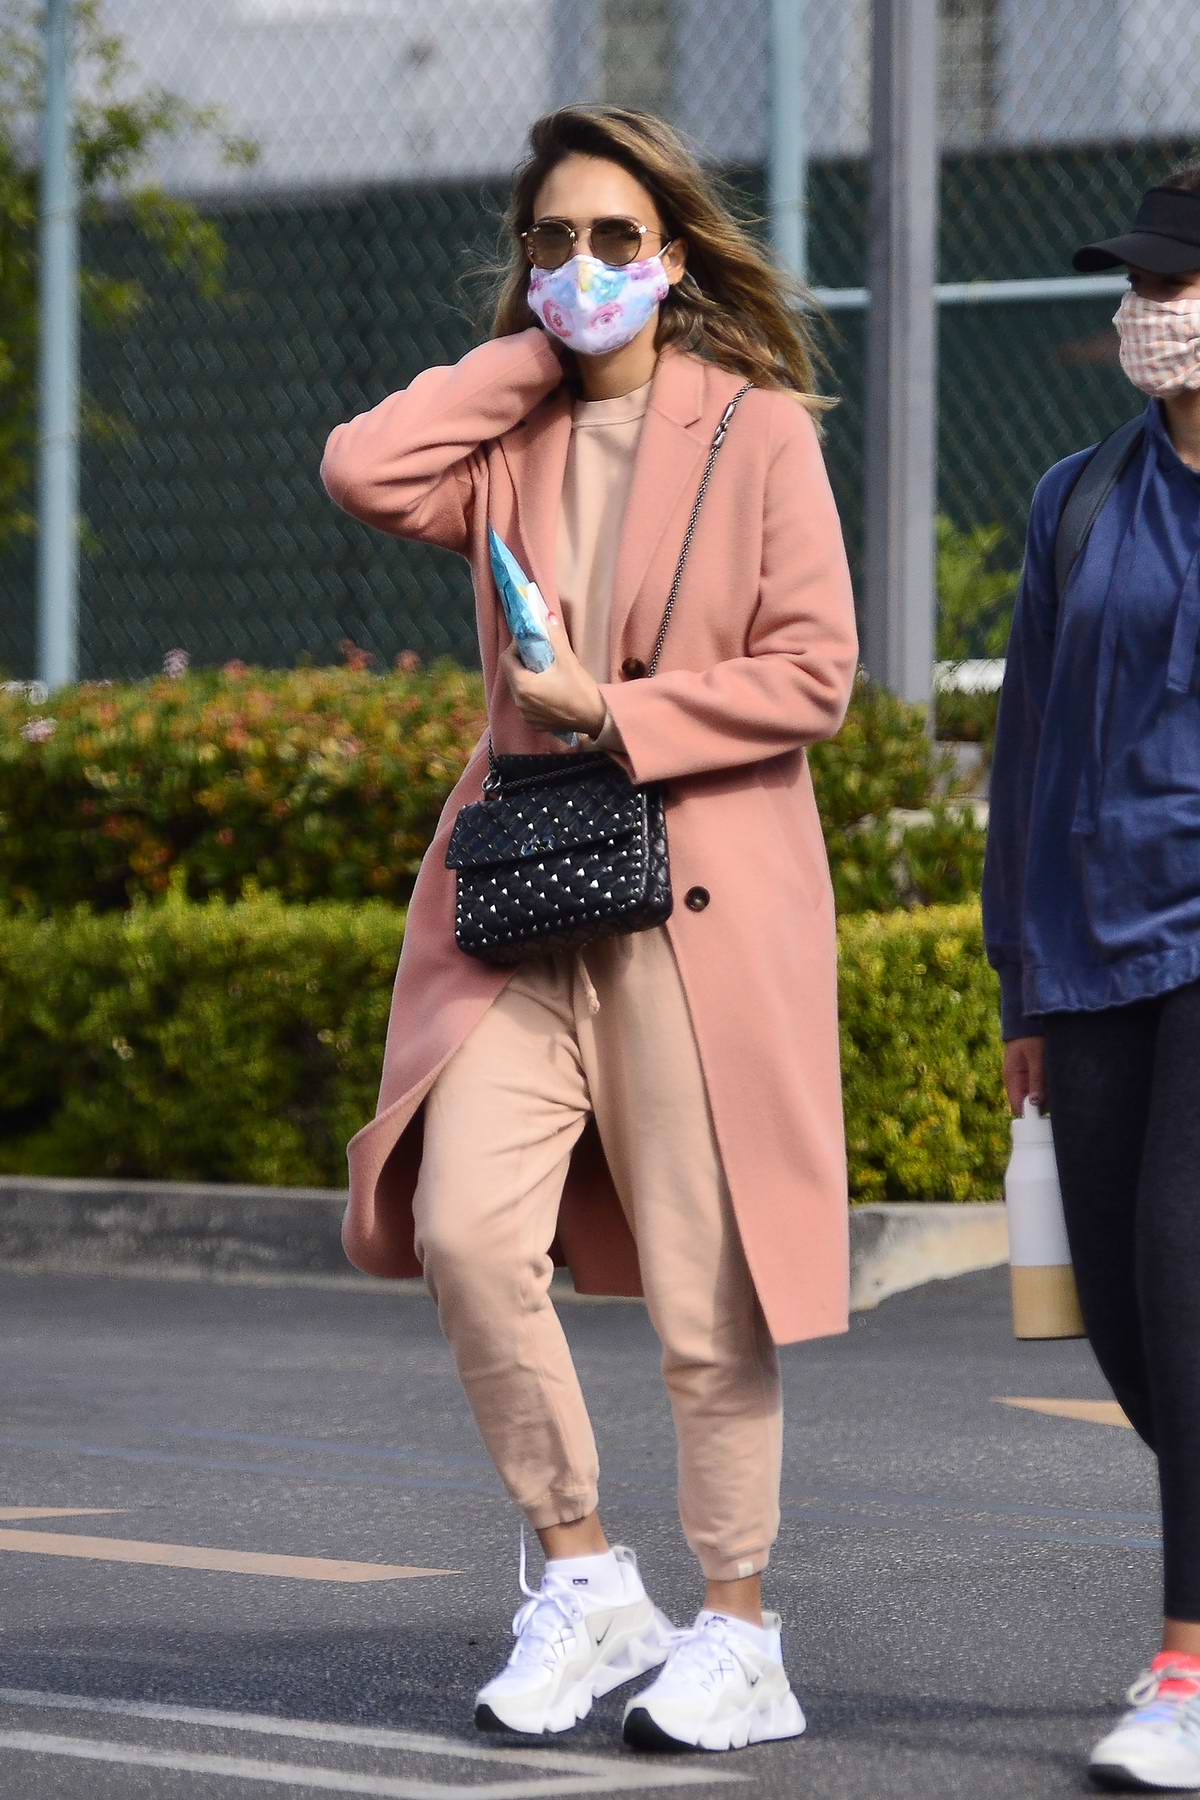 Jessica Alba seen wearing a peach pink overcoat with matching sweats as she leaves a tennis lesson in Los Angeles